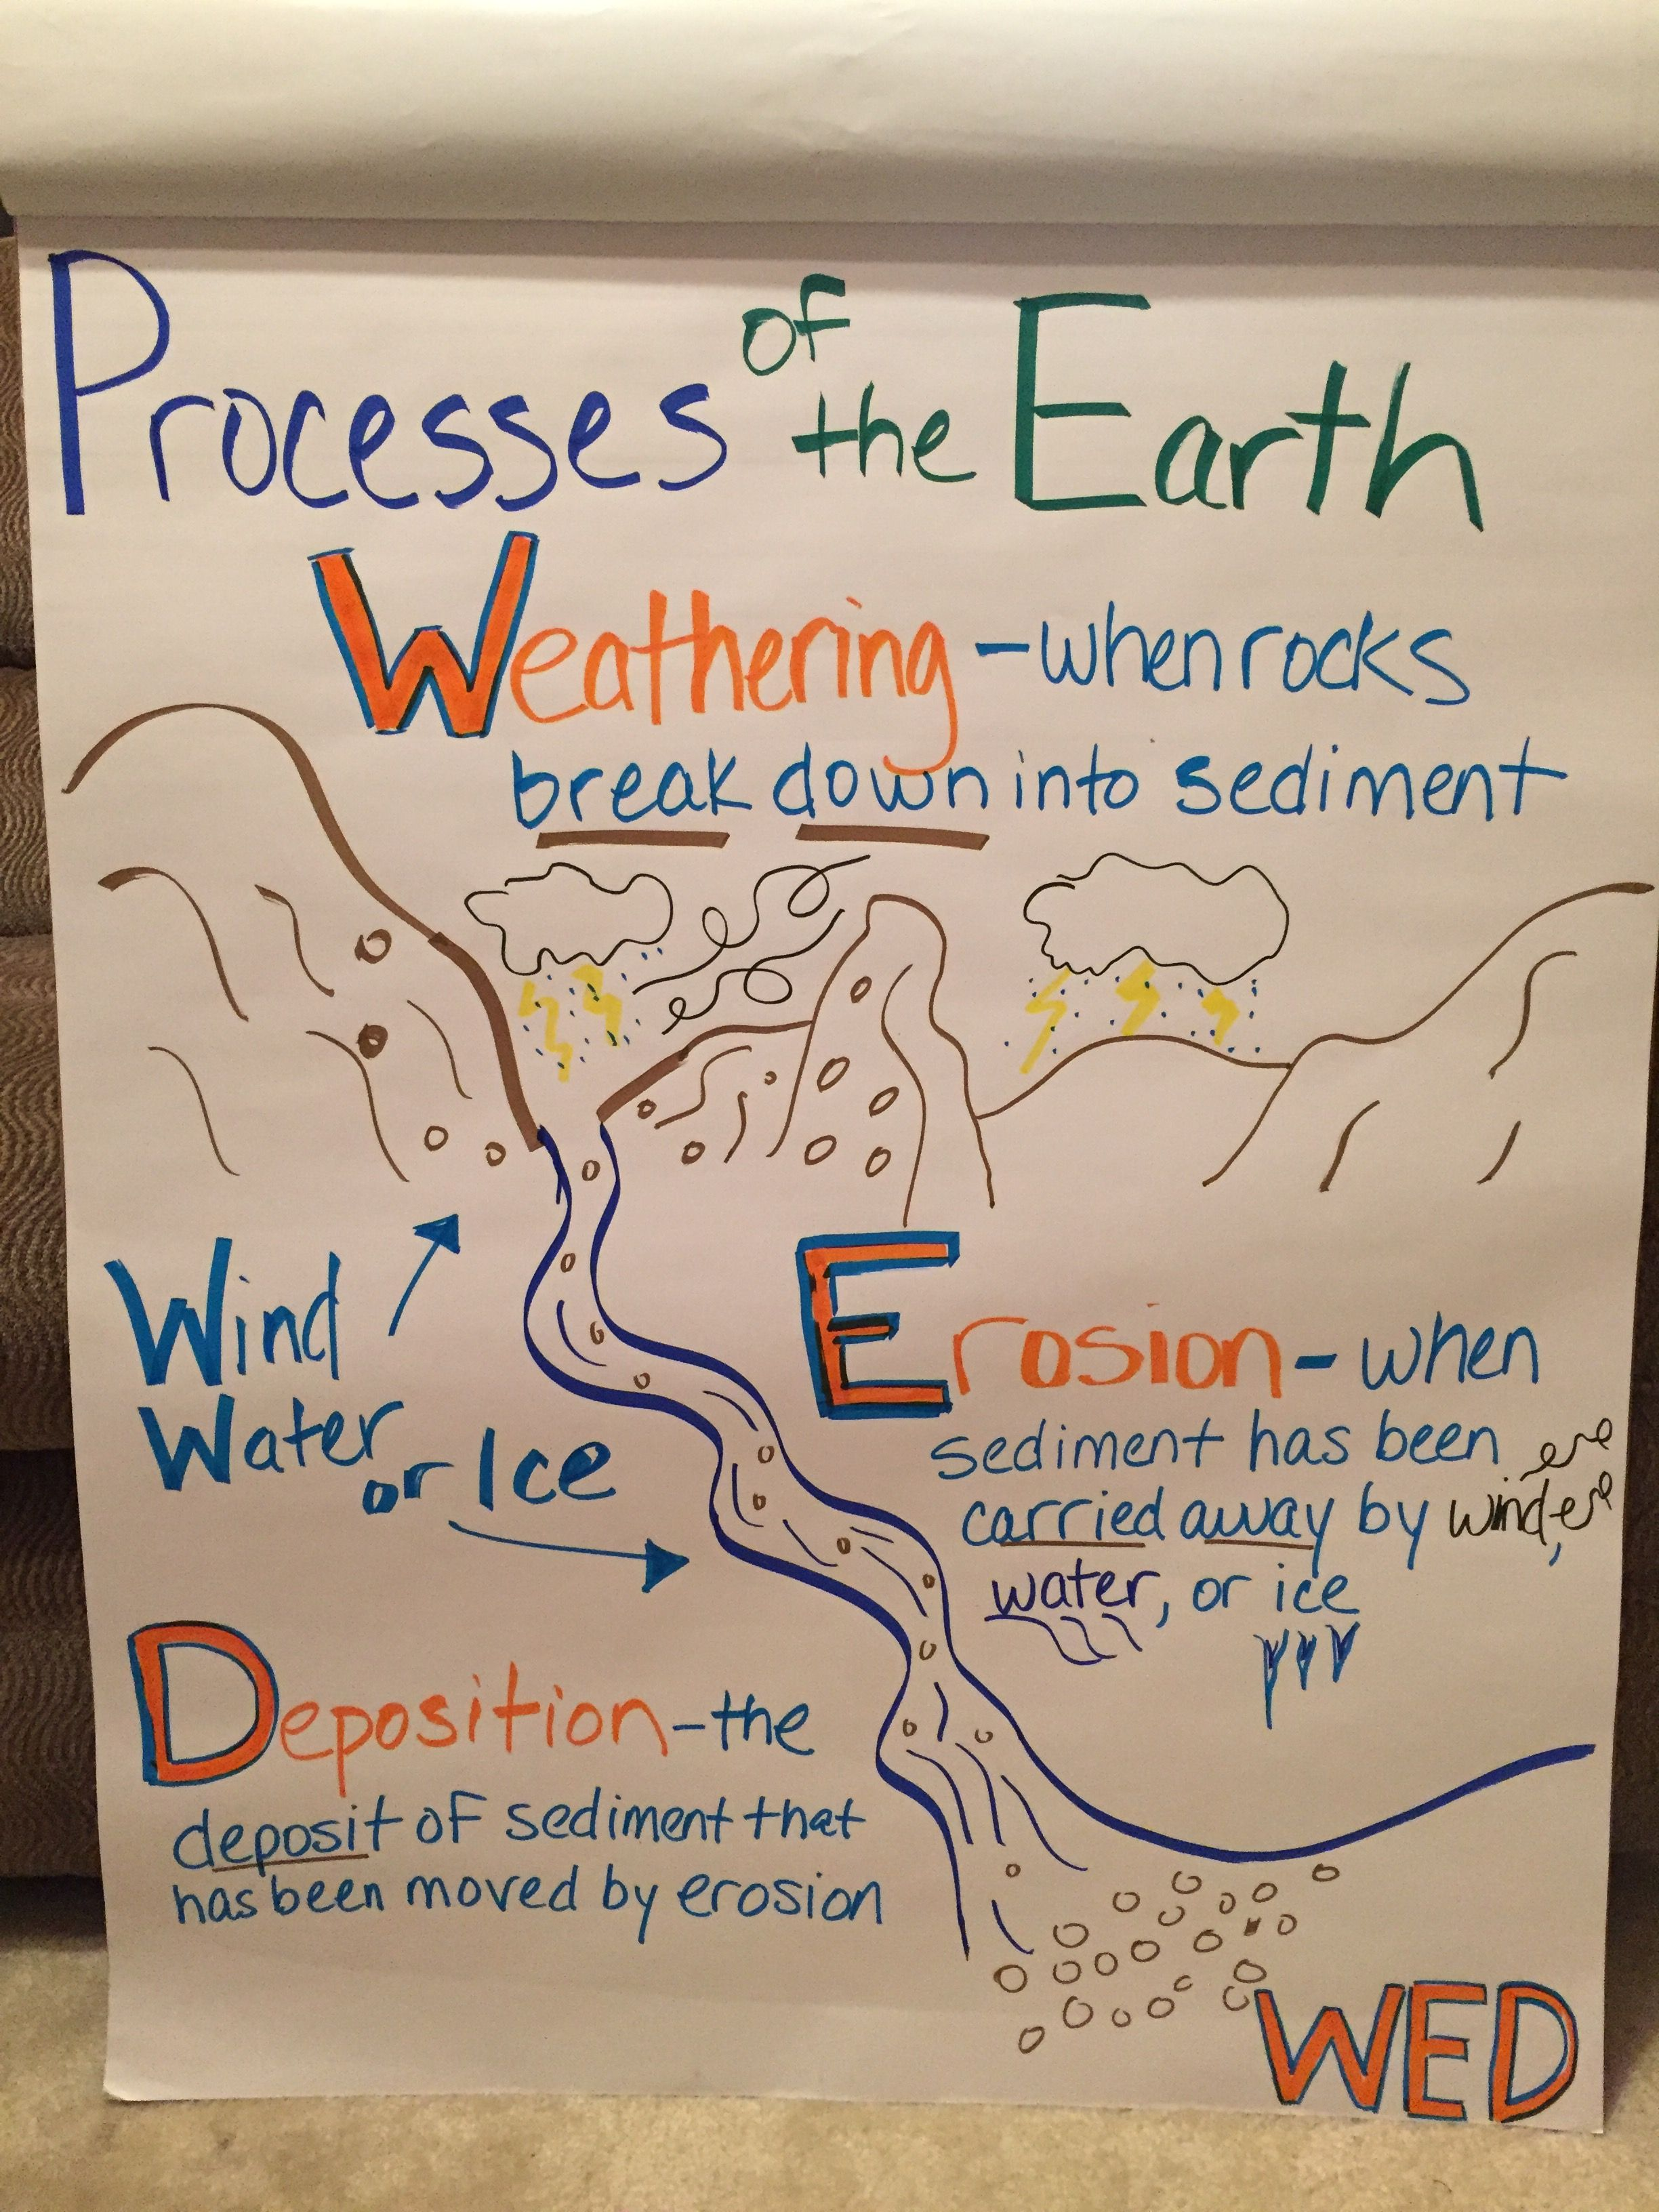 Weathering Erosion And Deposition Earth Surface Processes